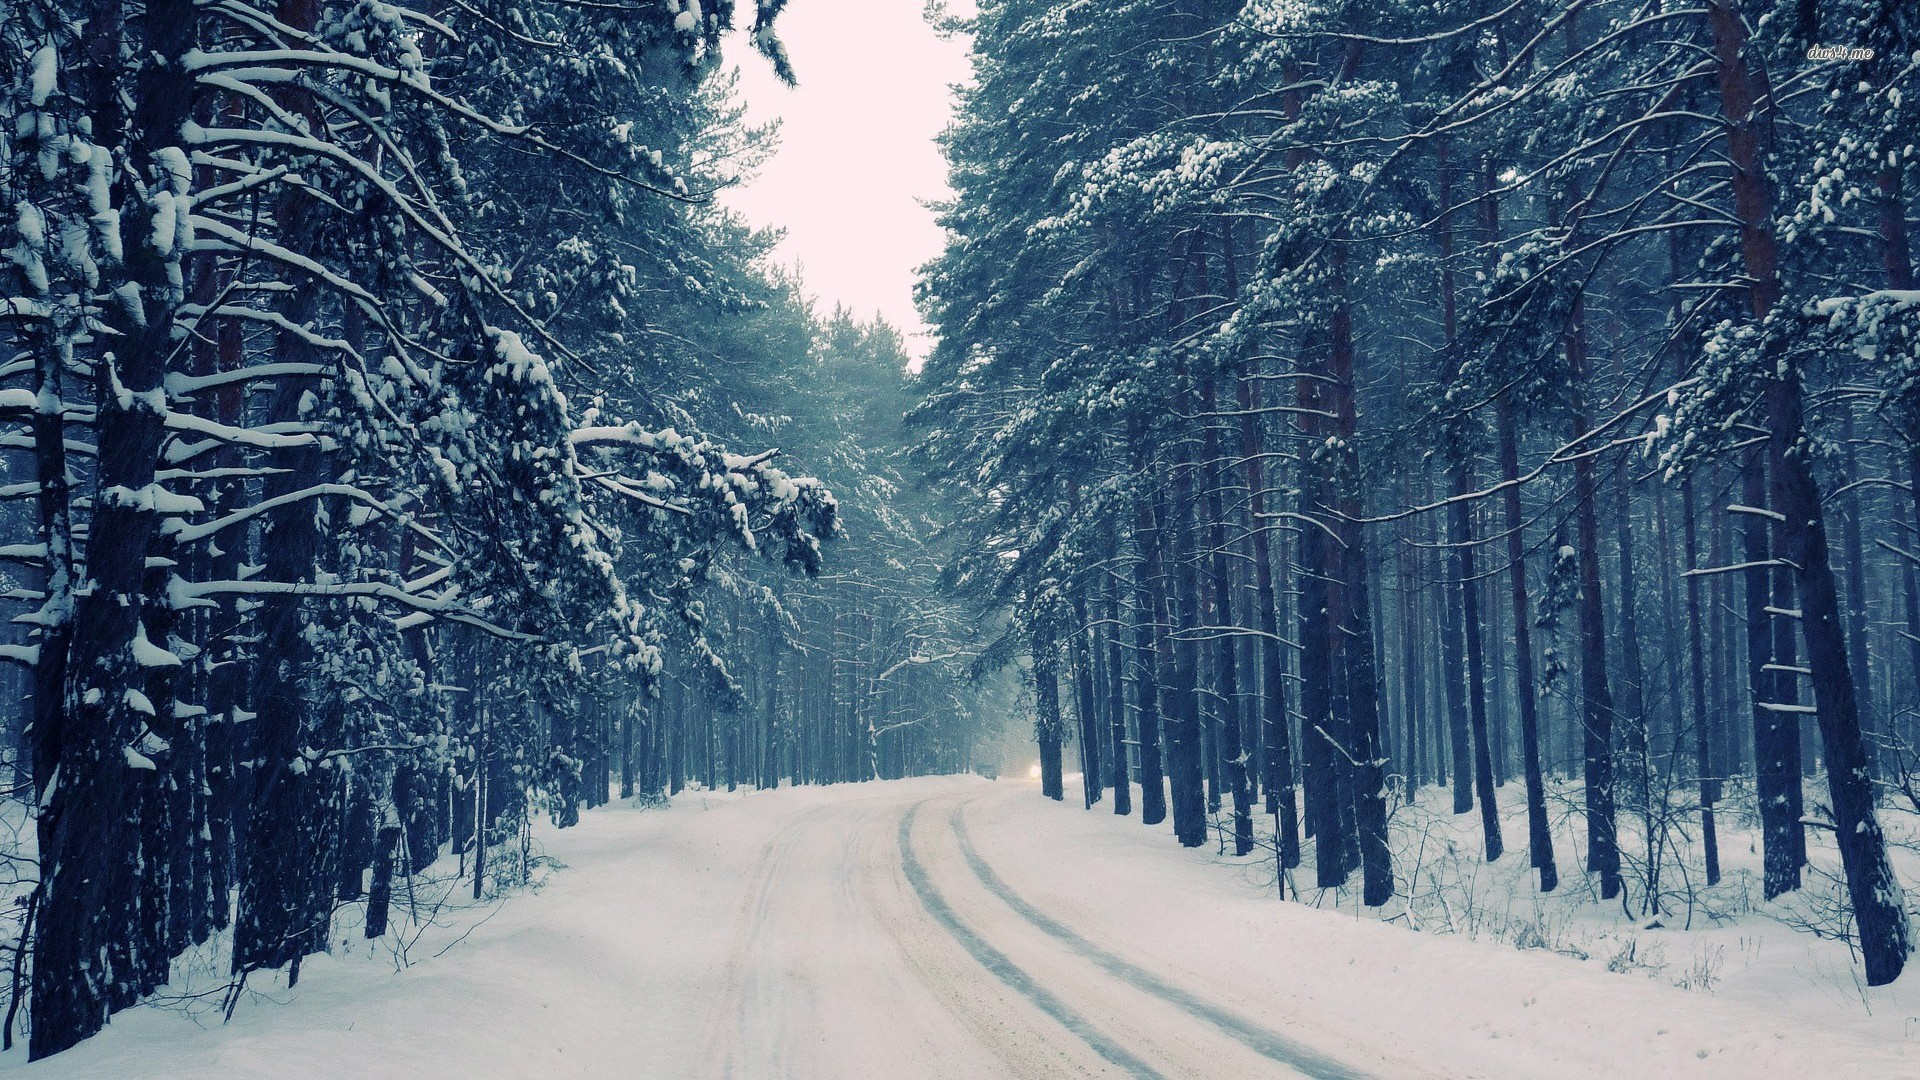 Winter forest wallpaper 62 images - Snowy wallpaper ...